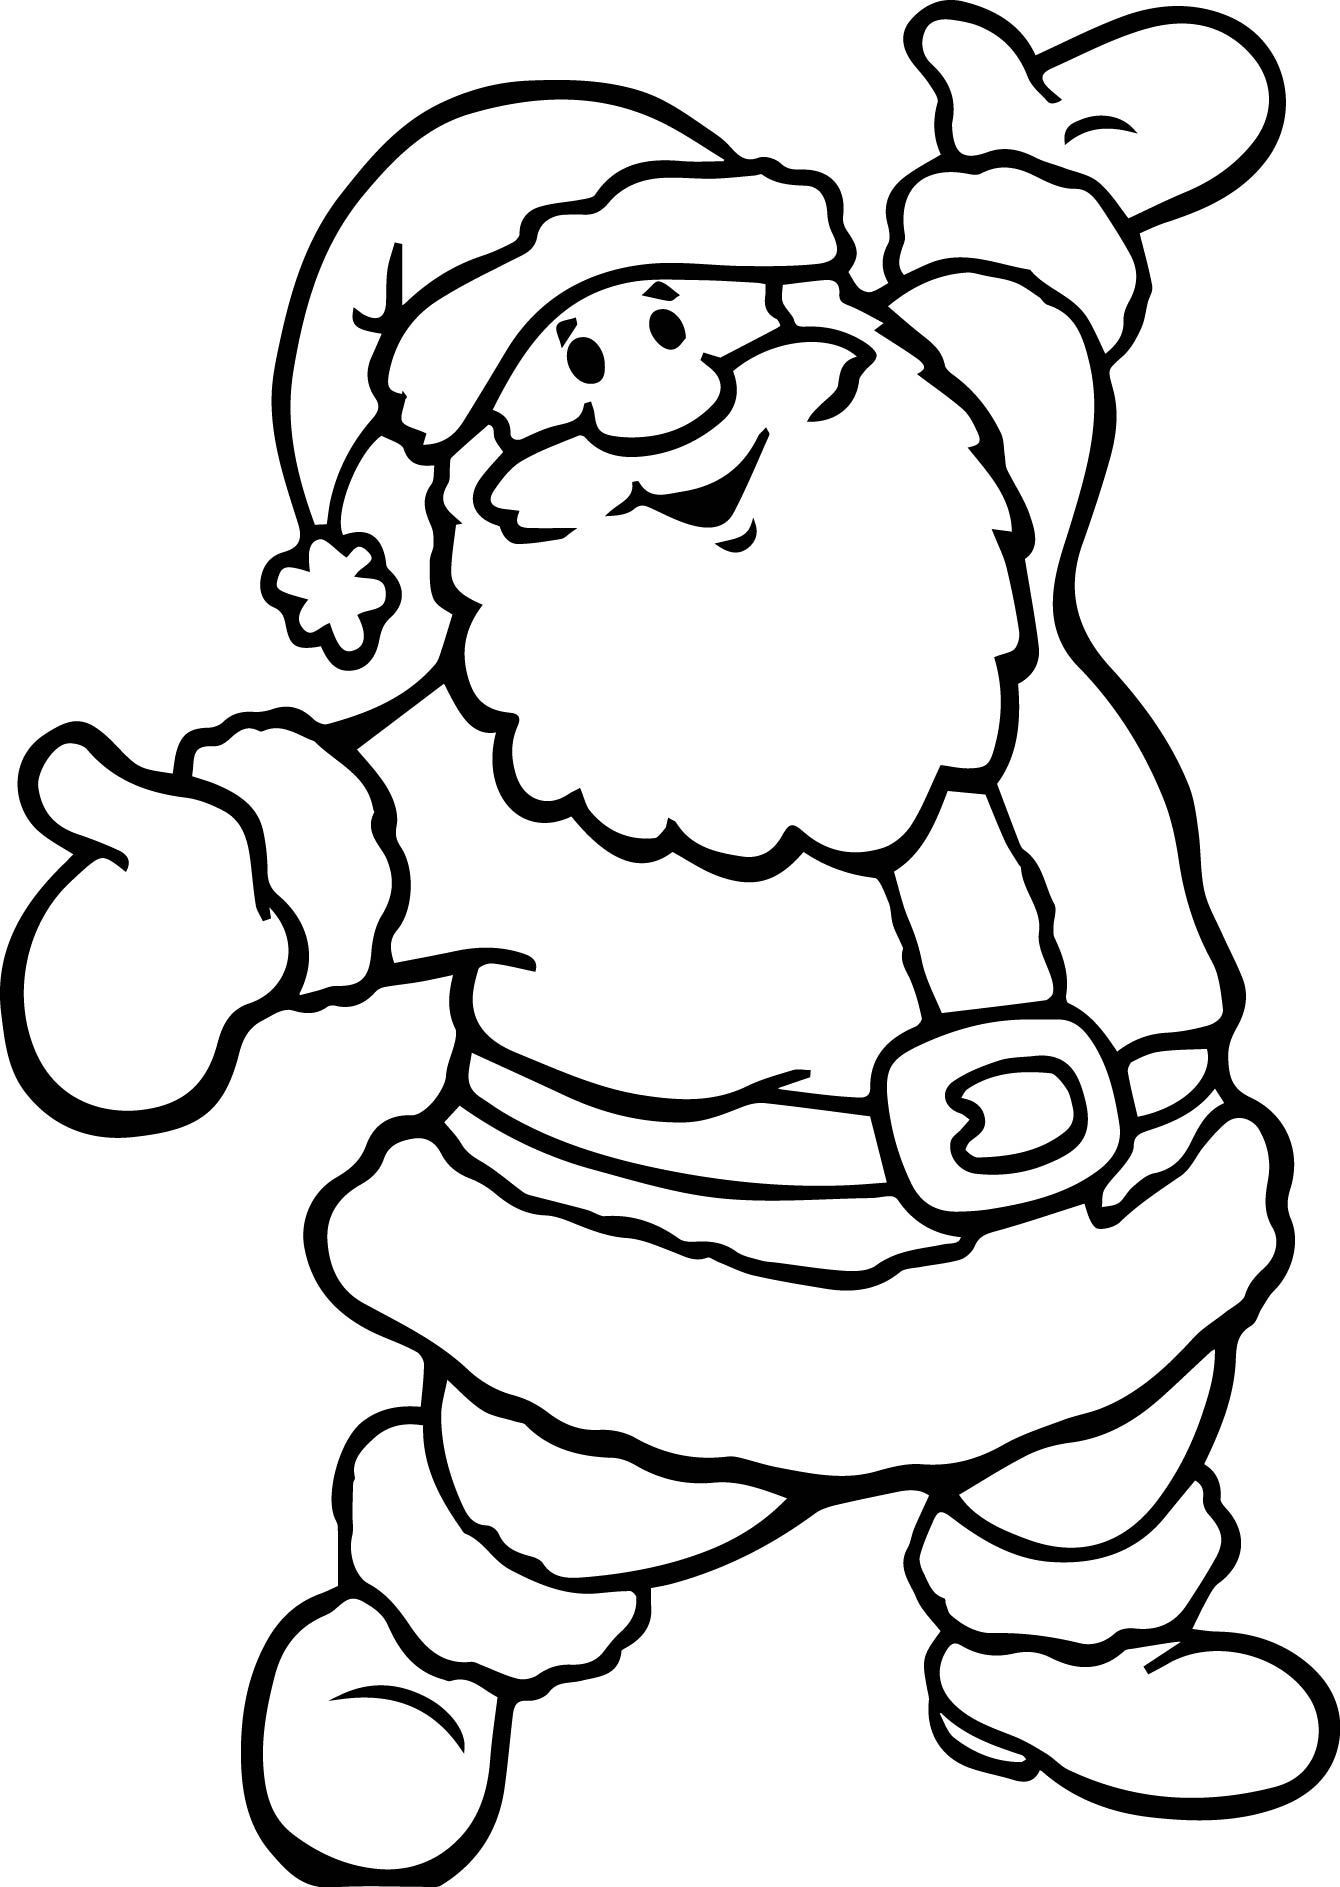 image relating to Santa Claus Printable titled interesting Santa Claus Printable Coloring Webpages Include entertaining coloring